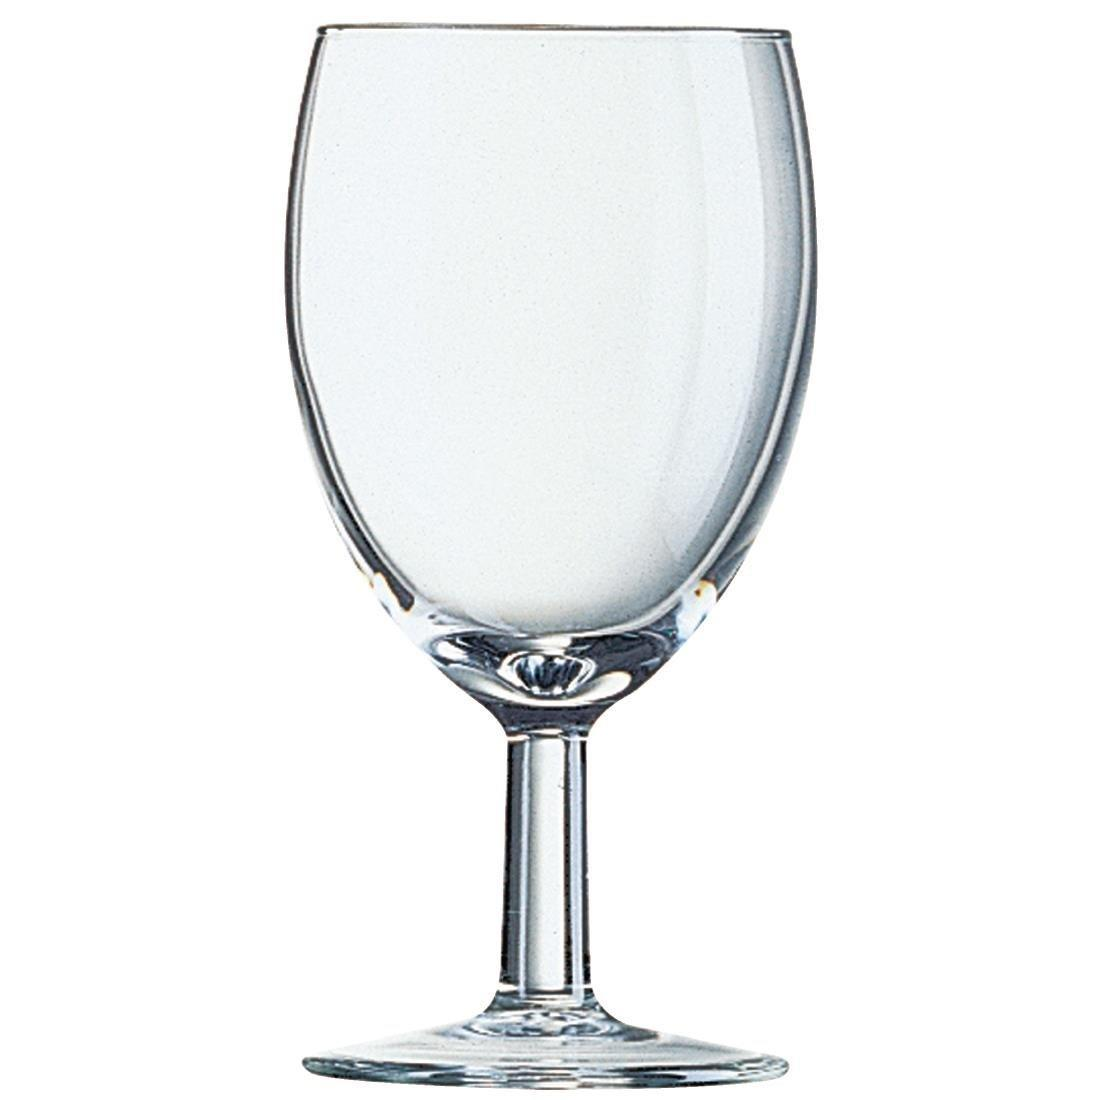 Arc Savoie Goblet - 240ml 8.5oz (Box 48) - CJ501